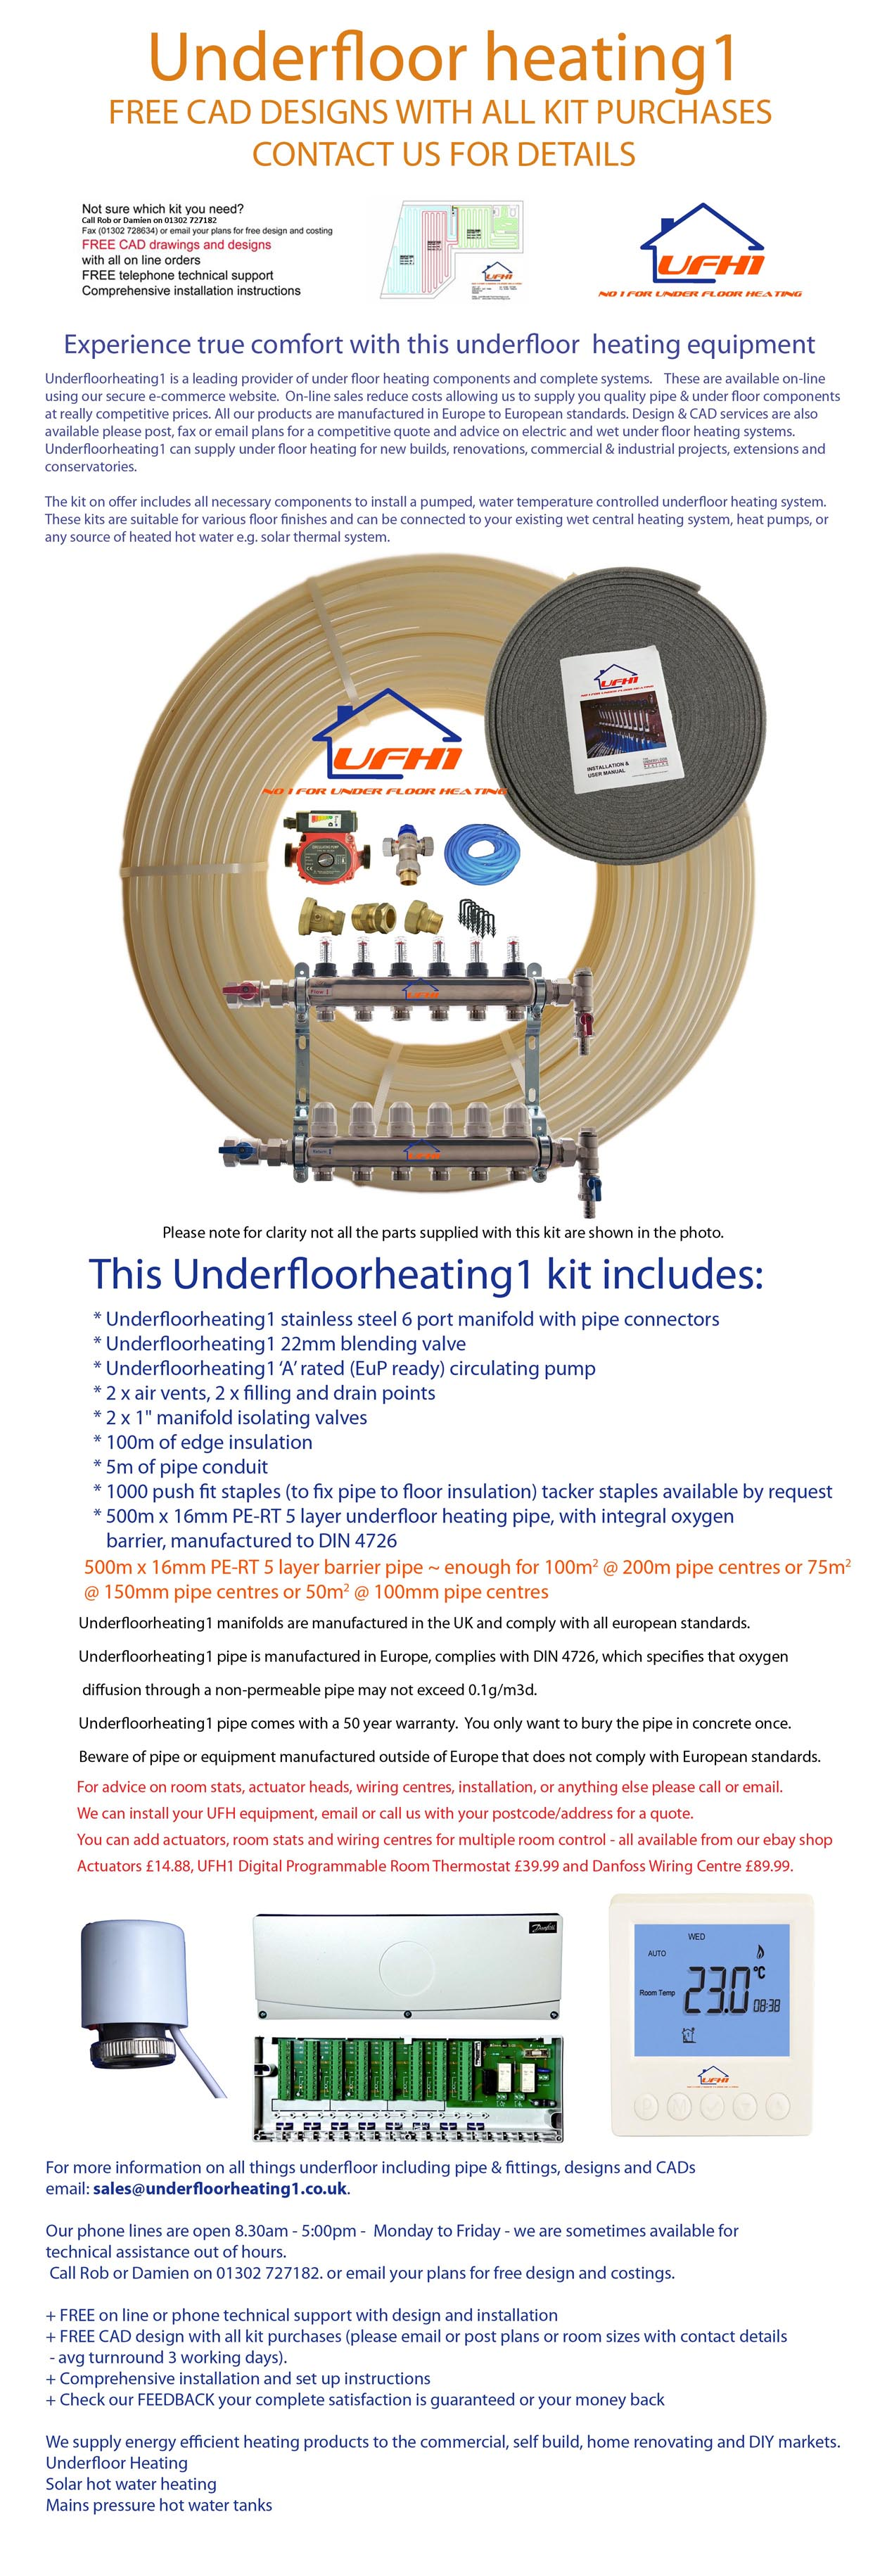 Latest technology for efficient underfloor heating custom for Most efficient home heating method